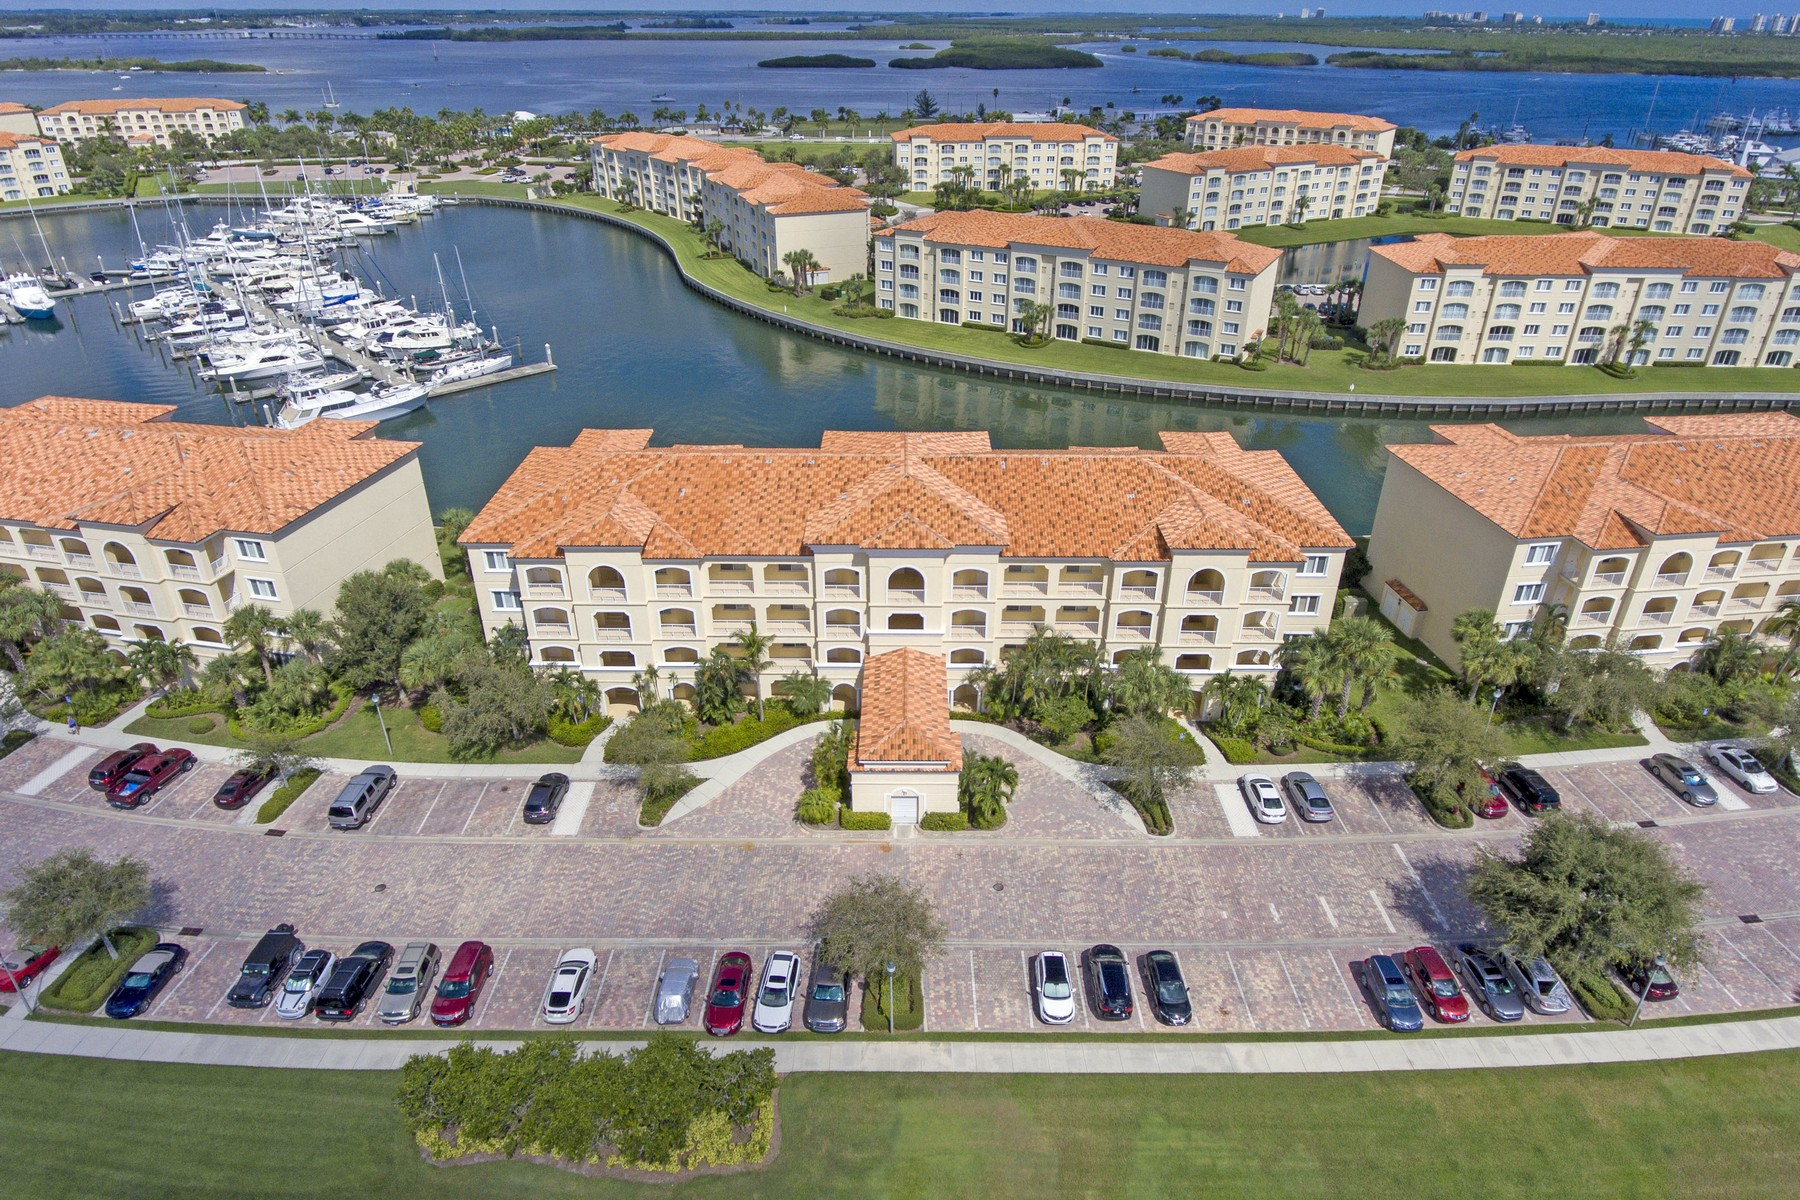 Single Family Home for Sale at Harbour Isle, Hutchinson Island Resort Living 17 Harbour Isles Drive PH 01 Fort Pierce, Florida 34949 United States